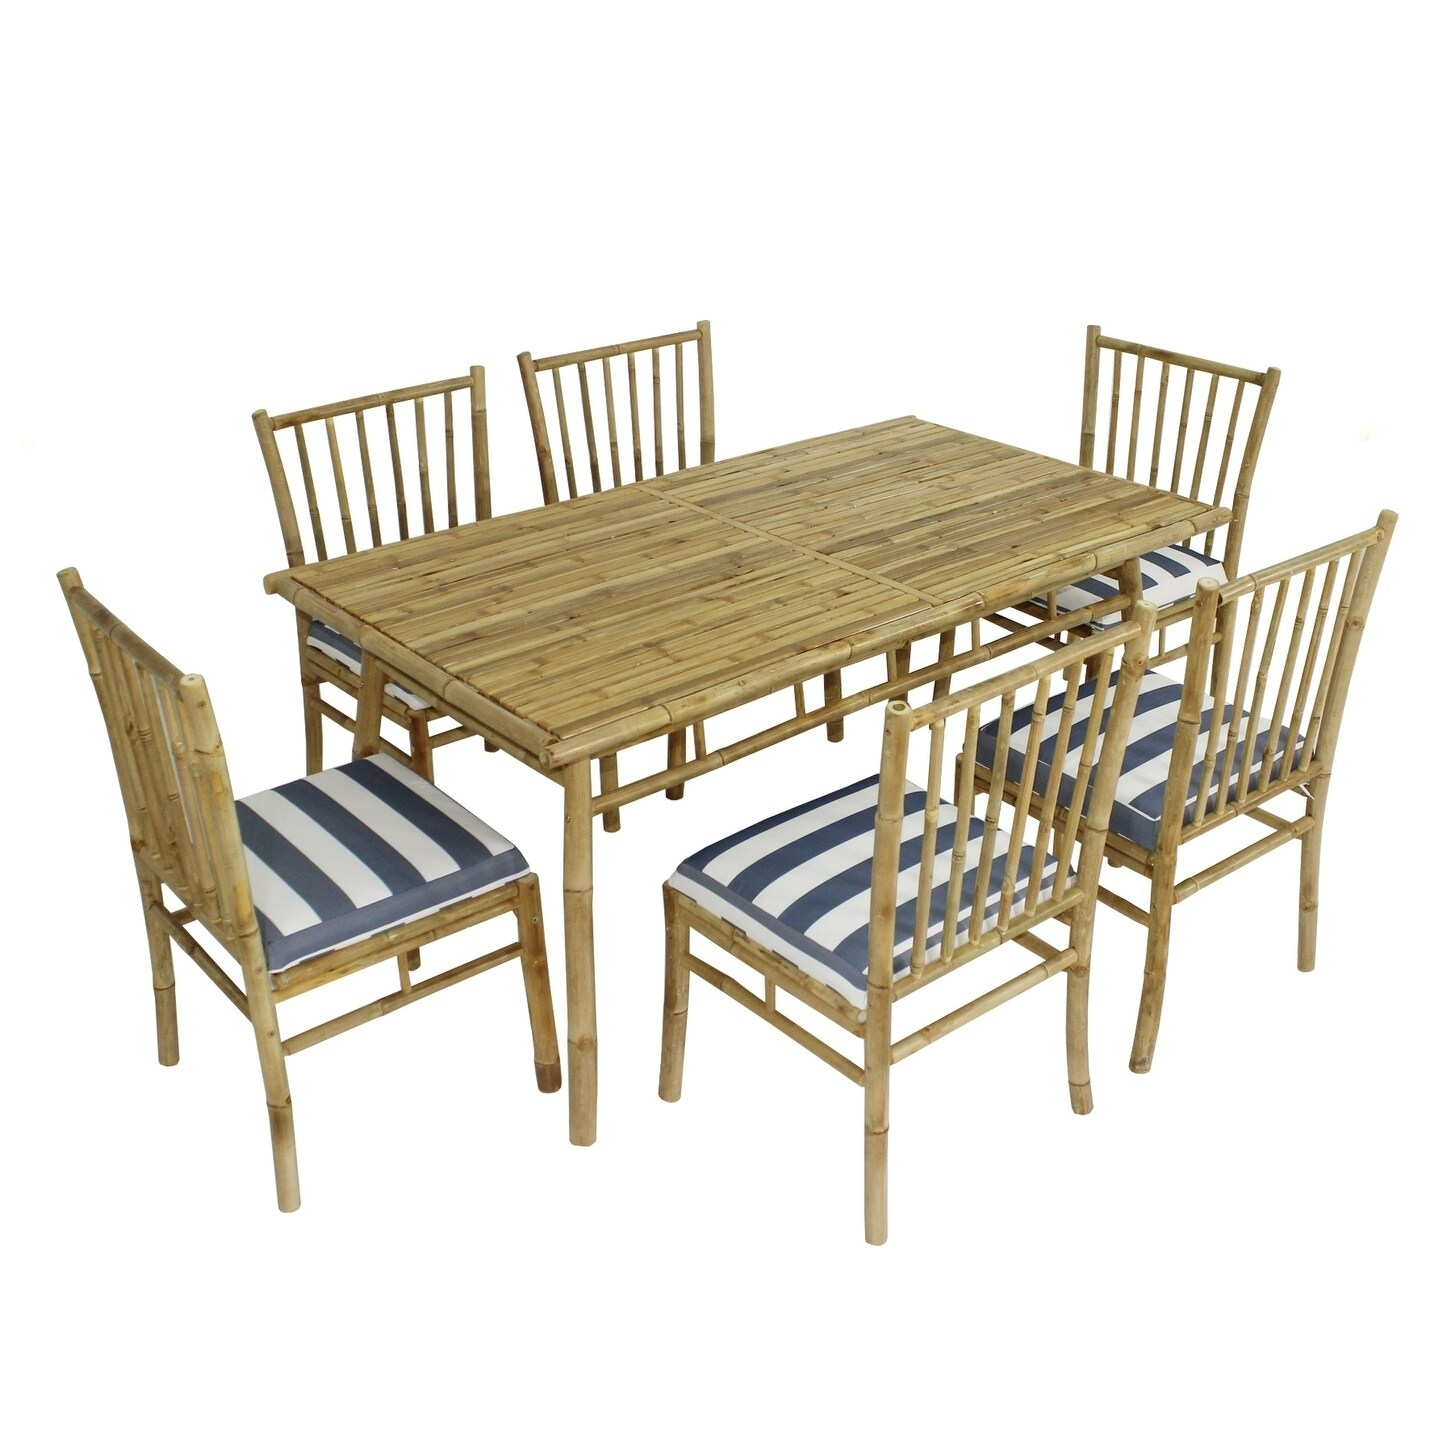 Bamboo Chairs Dining Set Of 6 White Blue Stripes Bamboo Chairs Rectangular Table